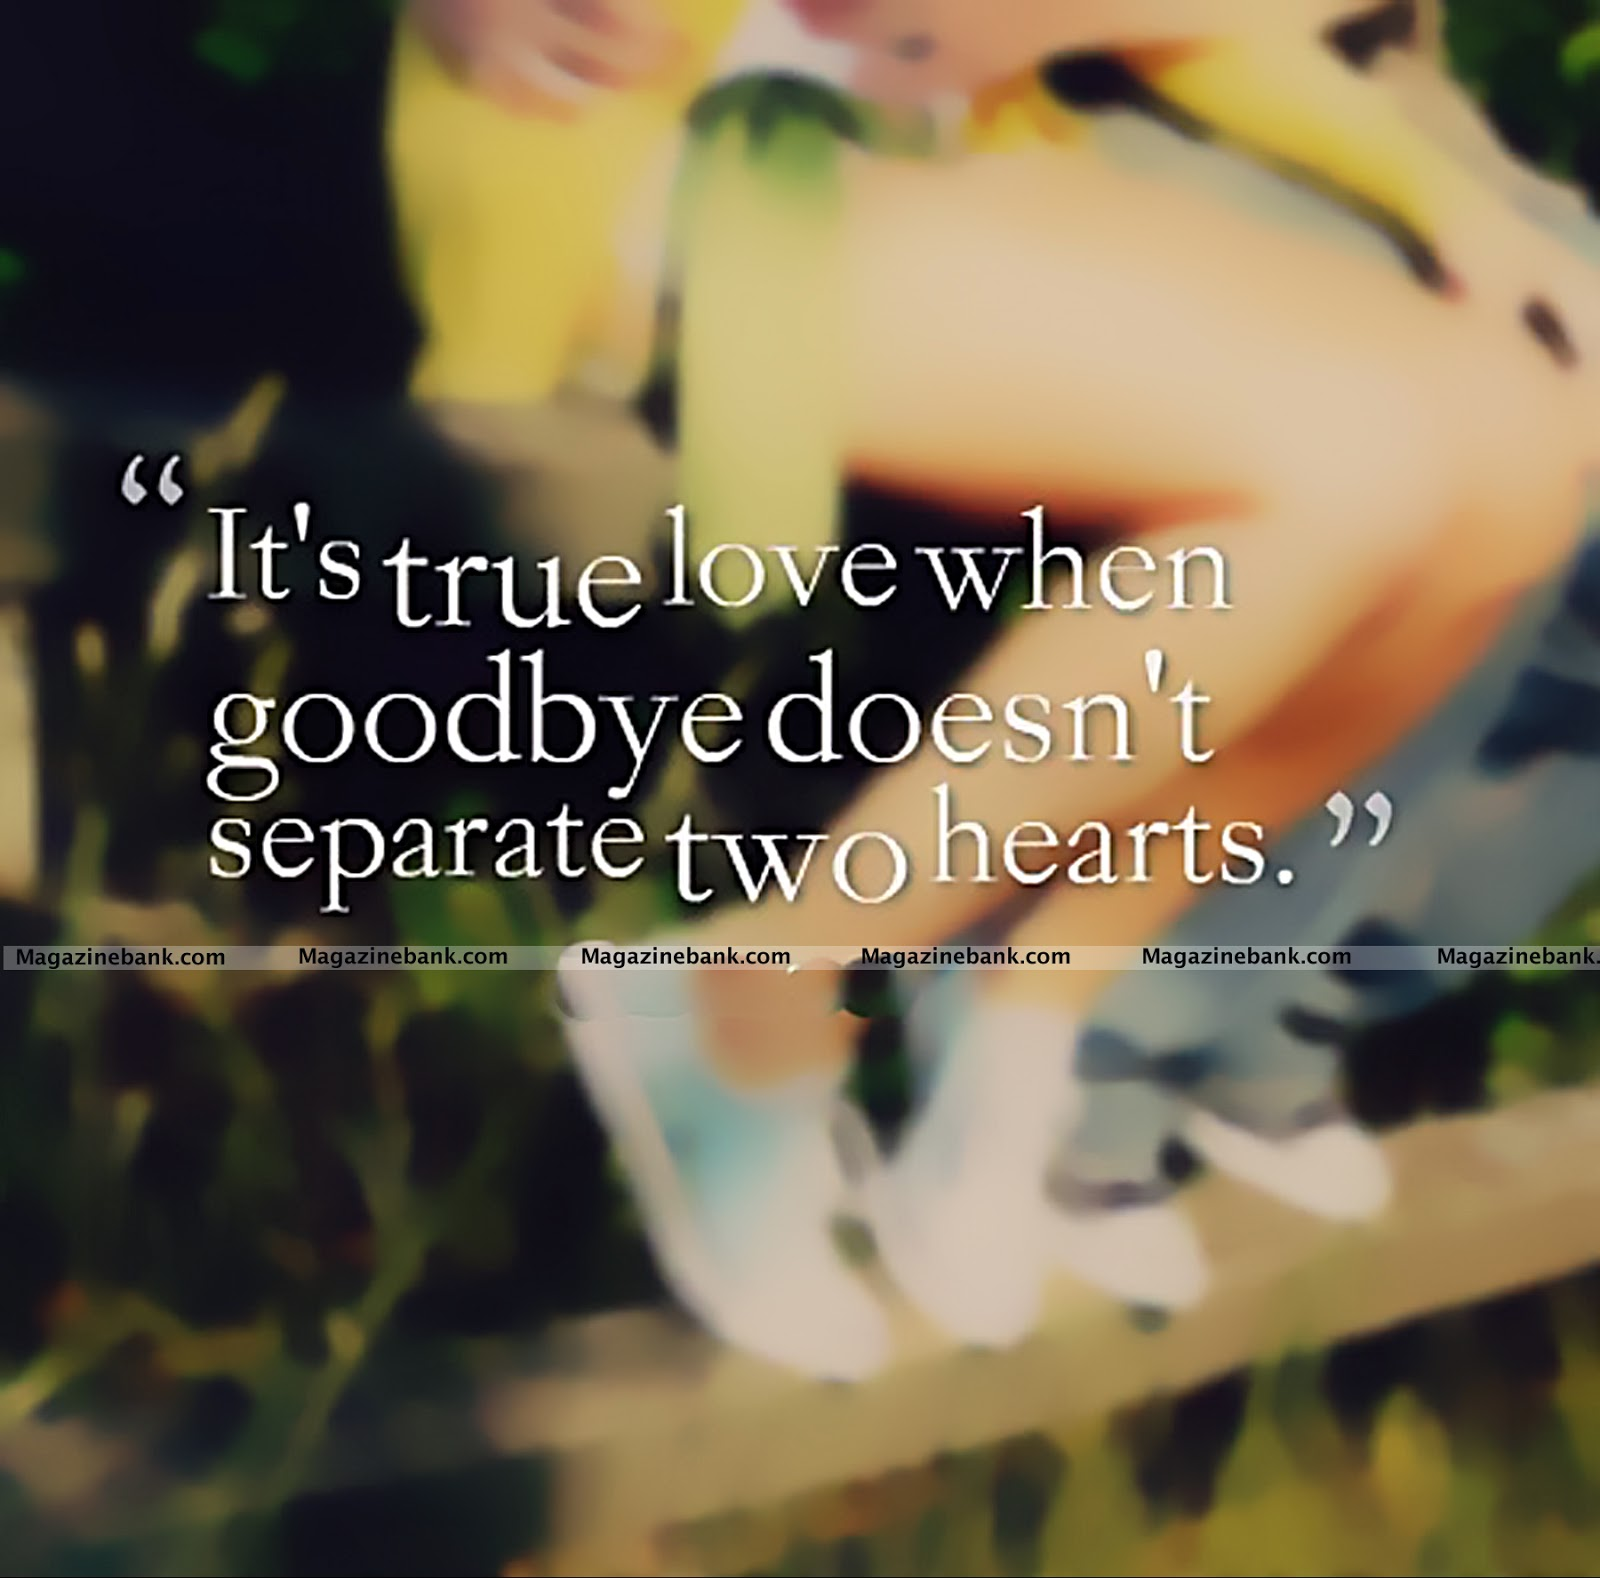 Sad Boy Alone Quotes: Broken Heart Quotes And Sayings For Girls. QuotesGram